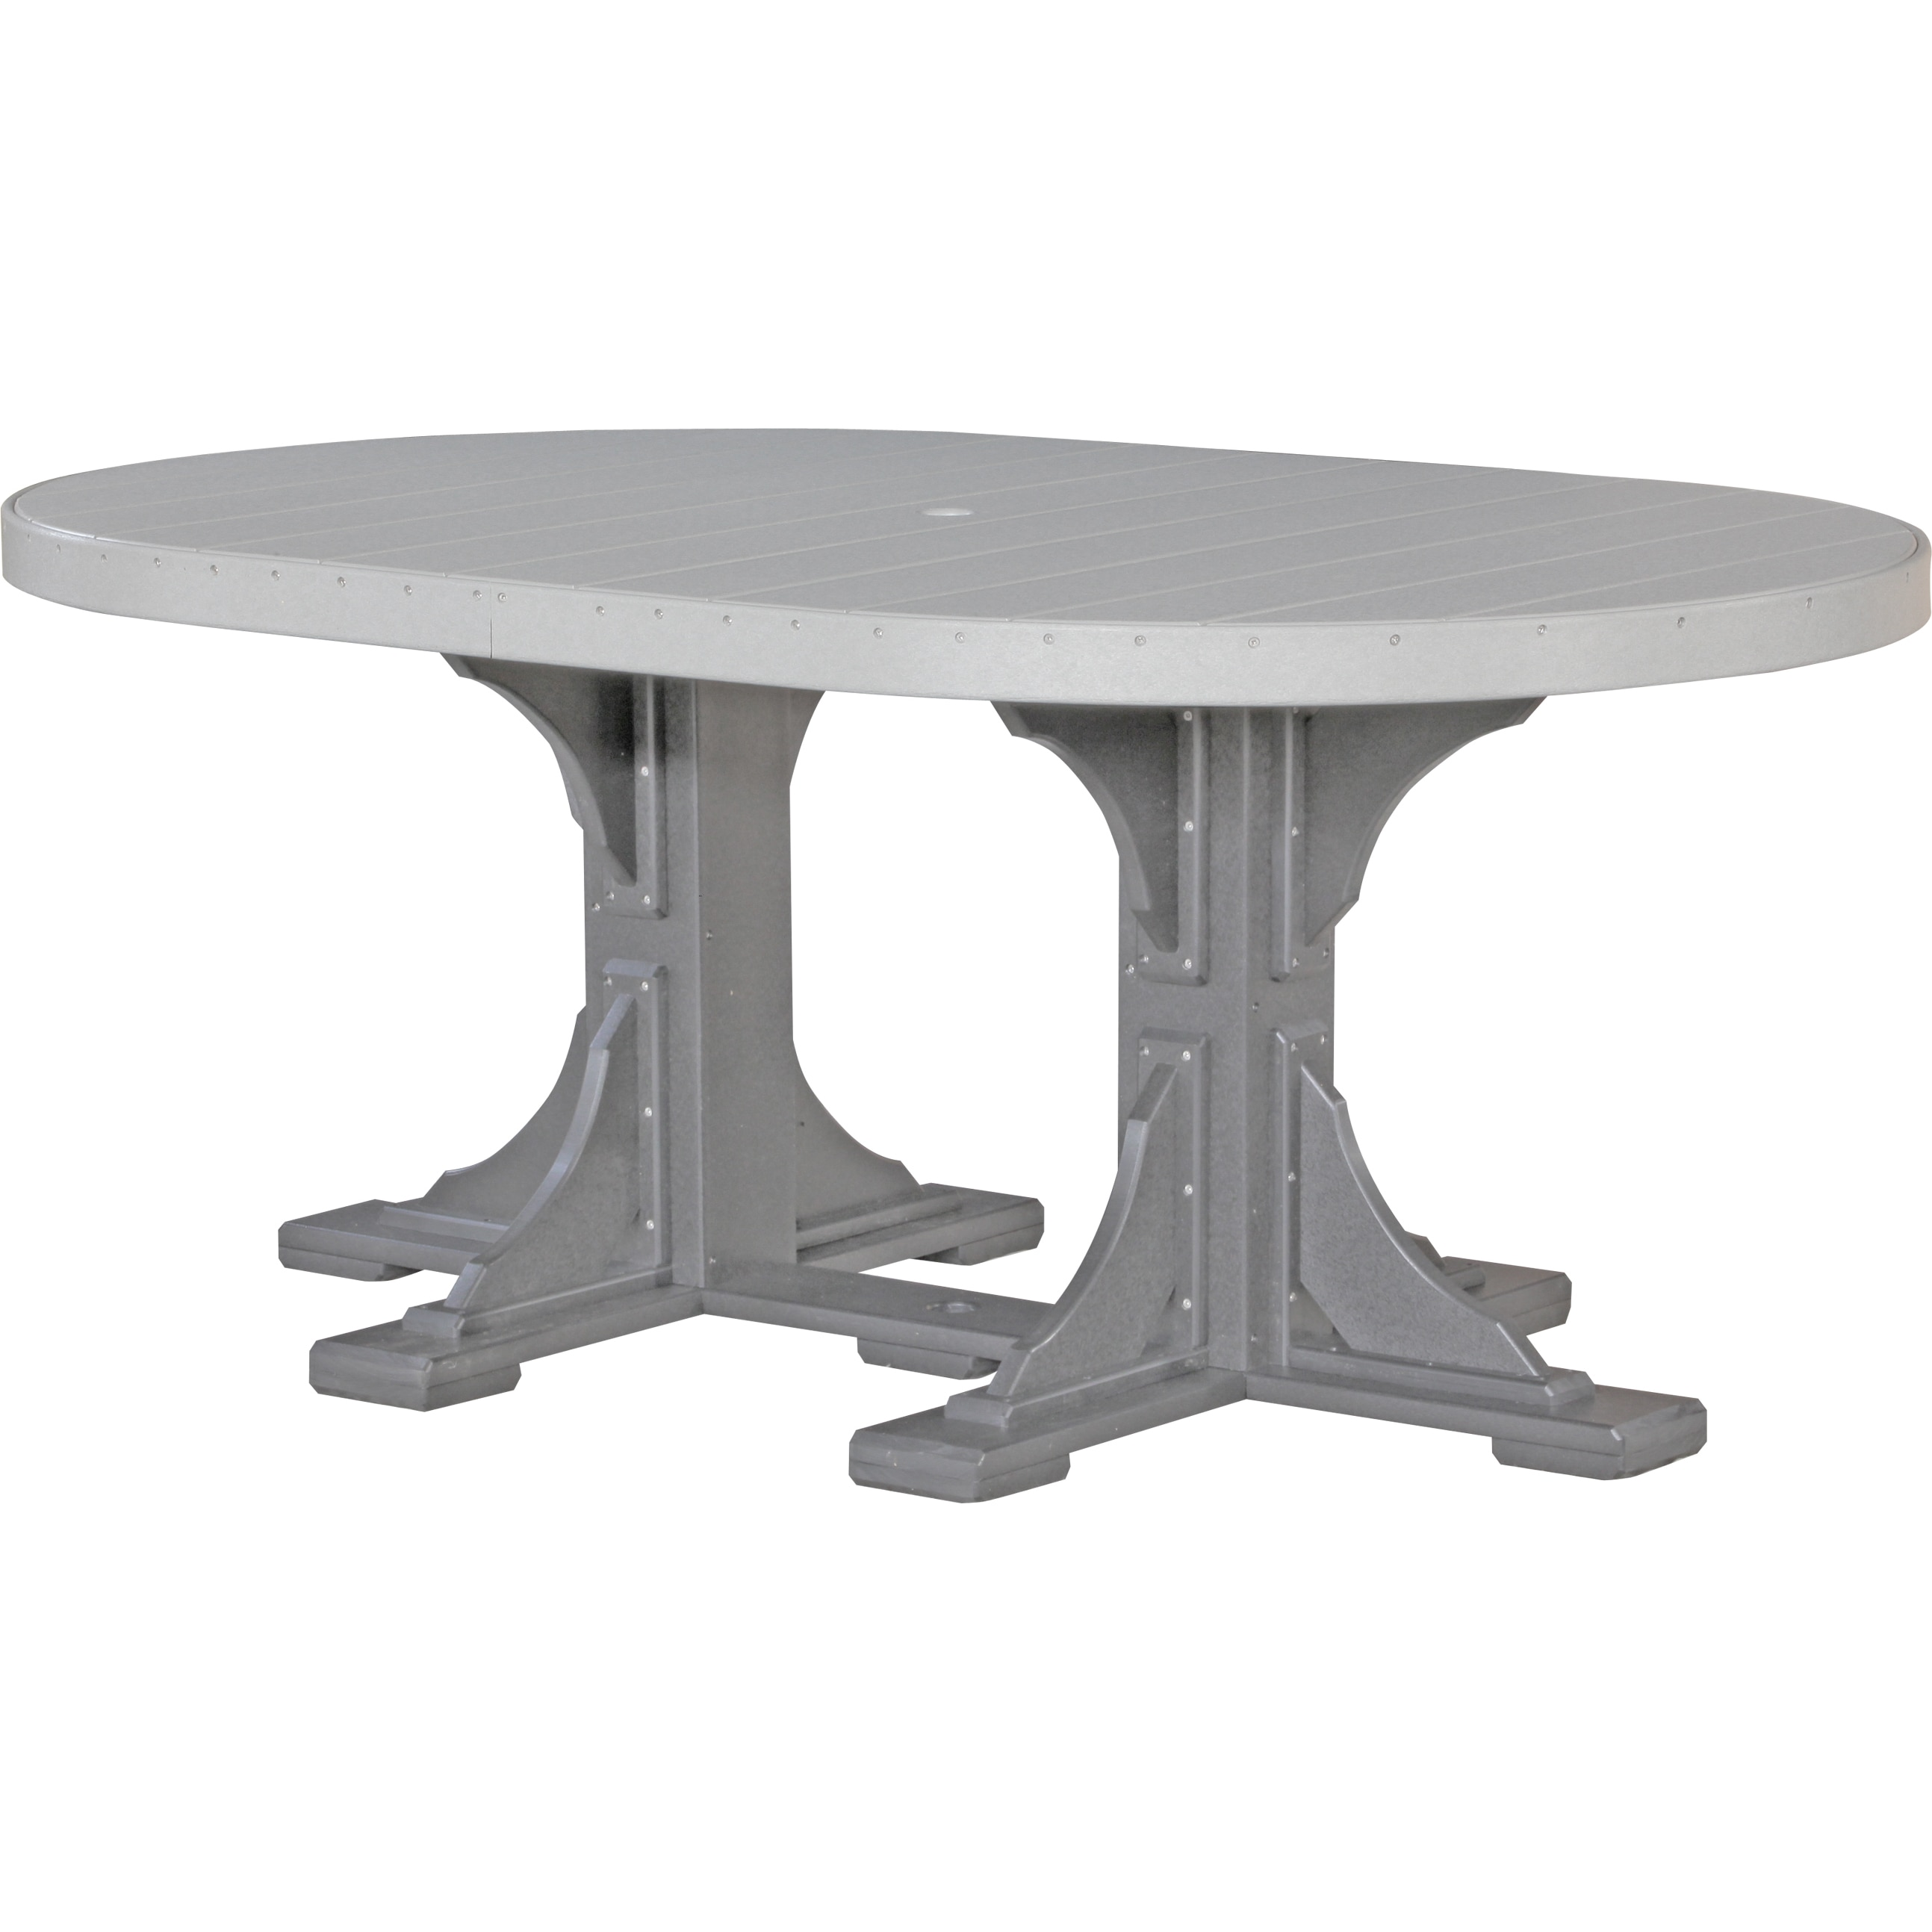 royal extension foot oval teak pg expansion family spec product by collection patio table